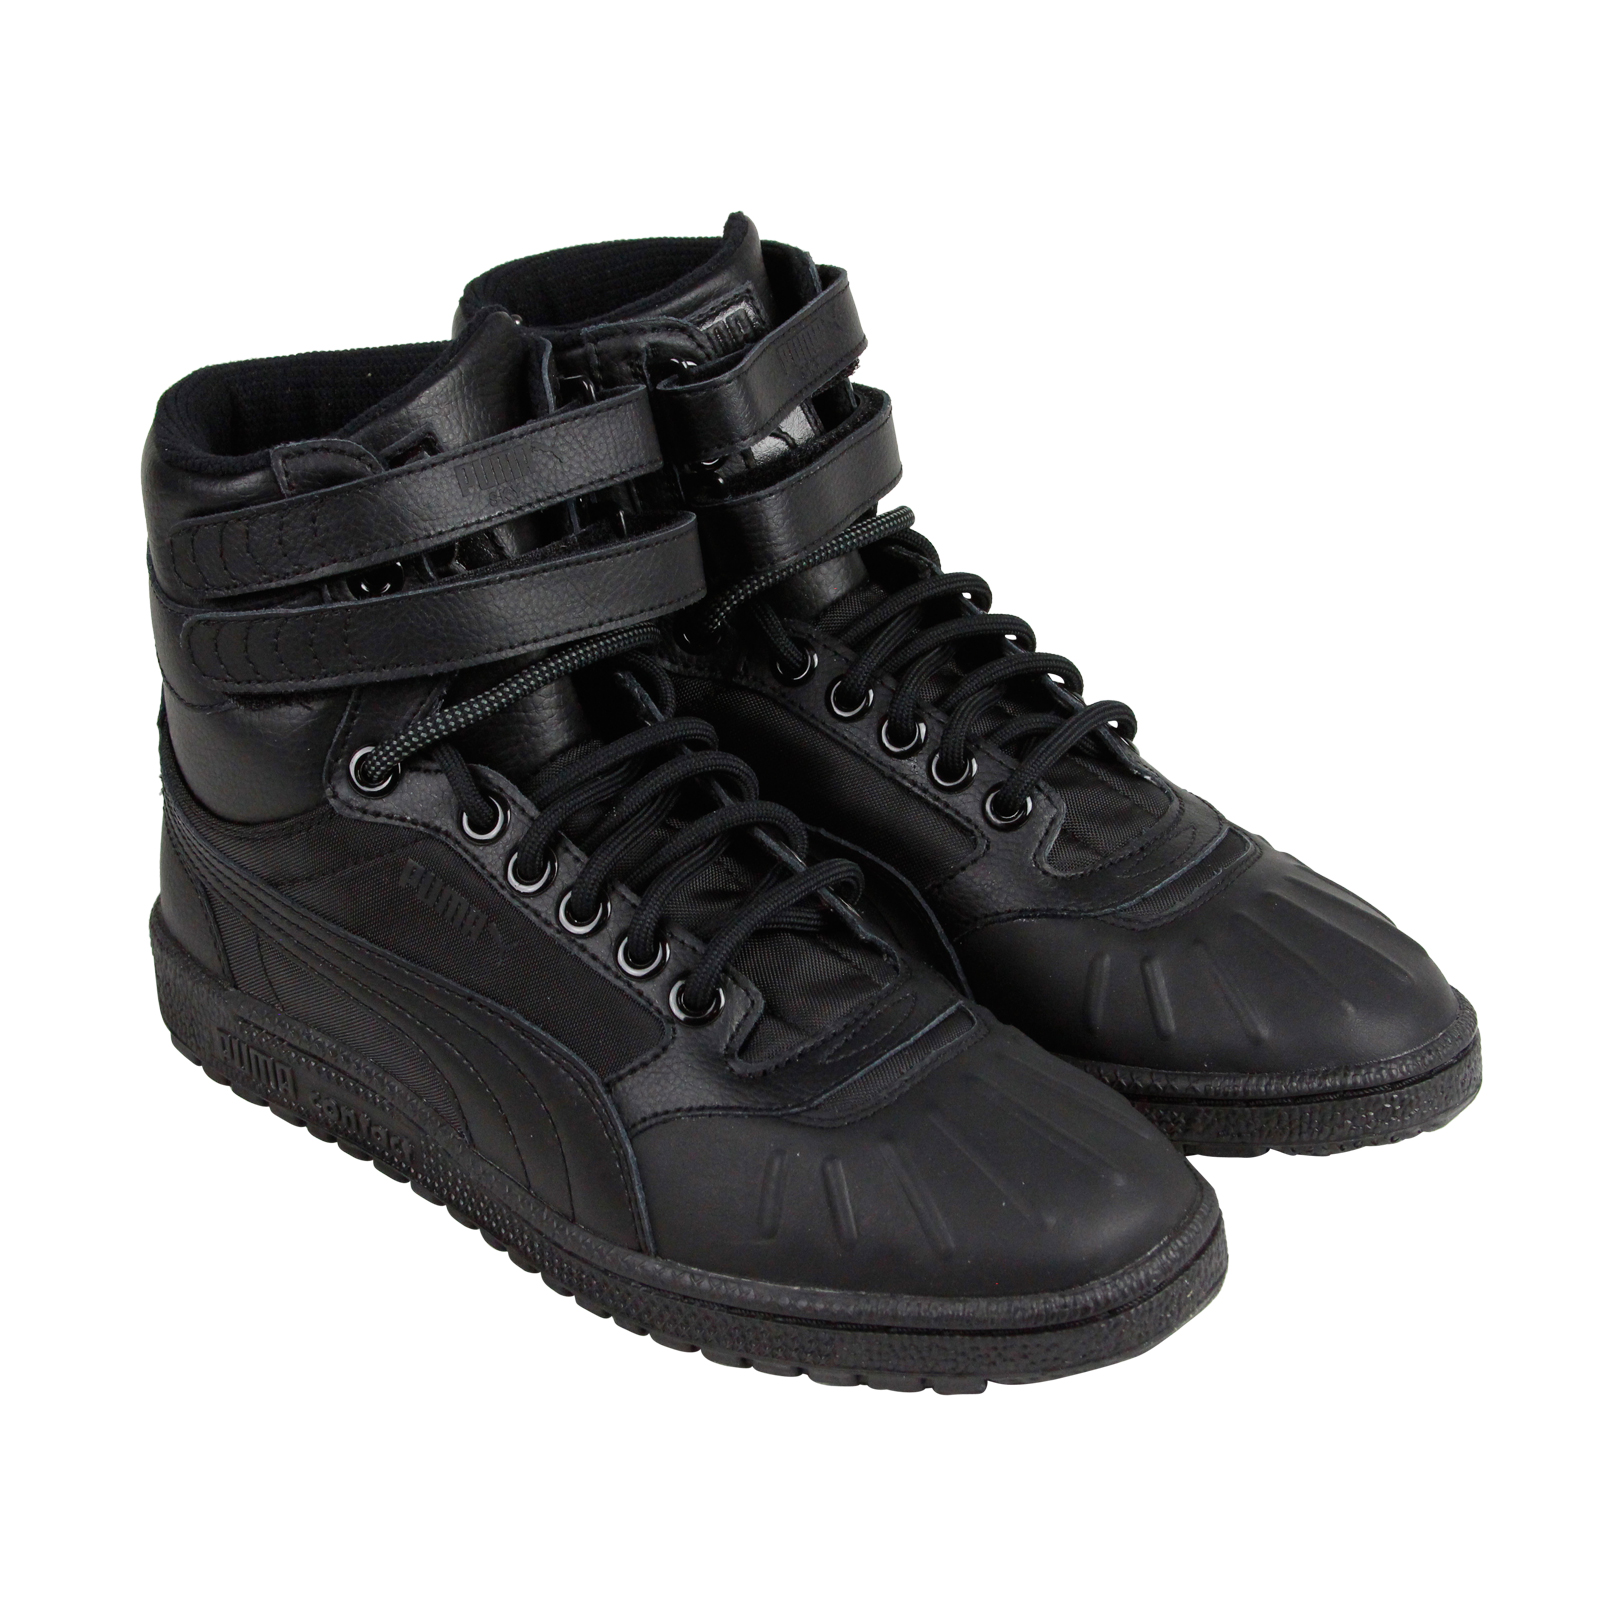 puma sky ii hi duck boot mens black leather high top lace